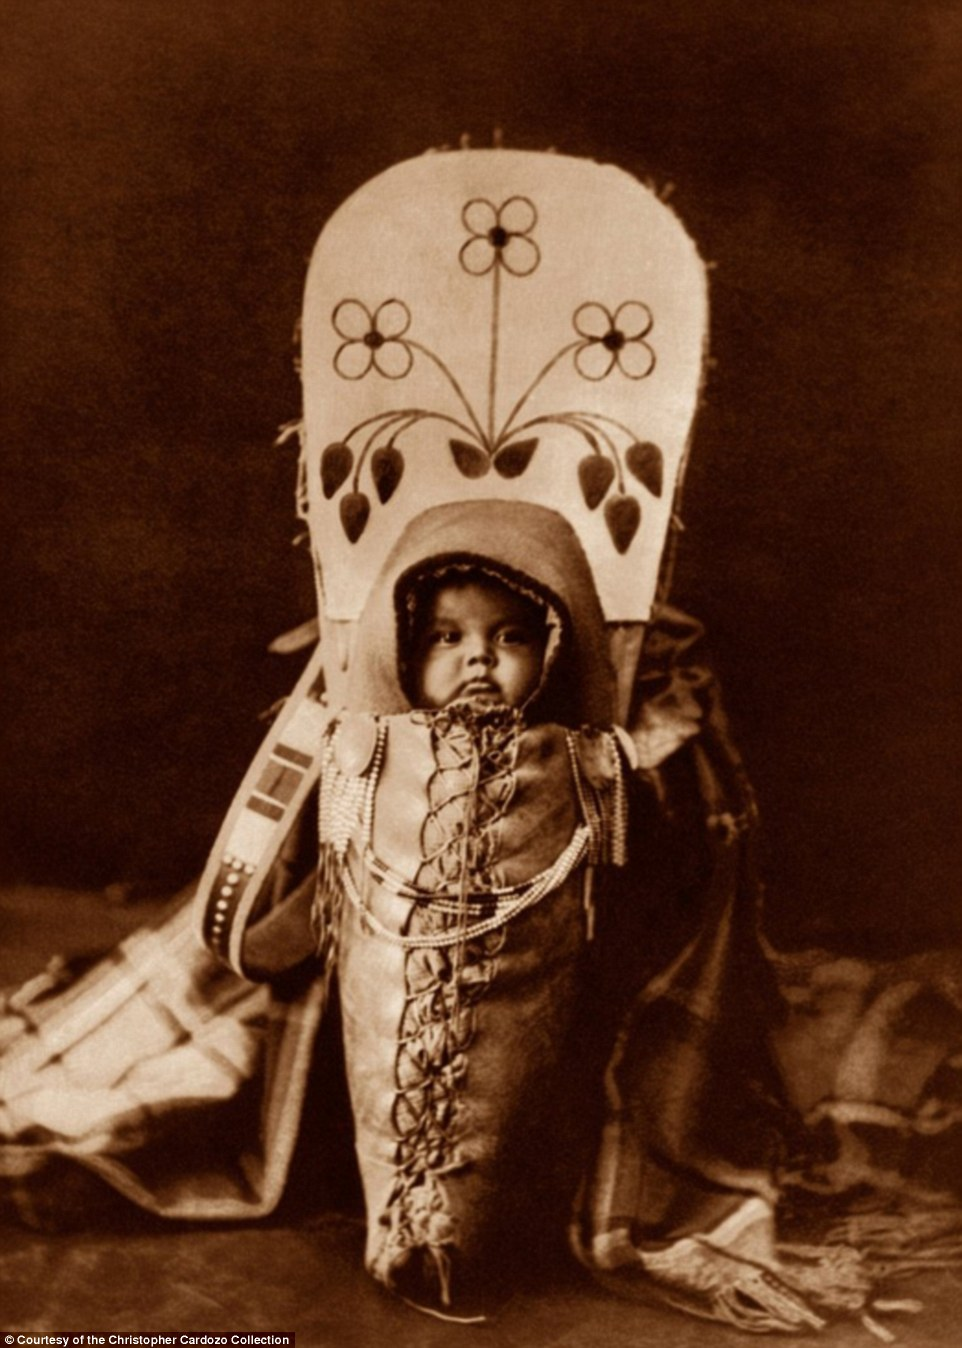 Ethnography: Between 1906 and 1930, Curtis, originally from Wisconsin, was commissioned to document the Native American culture